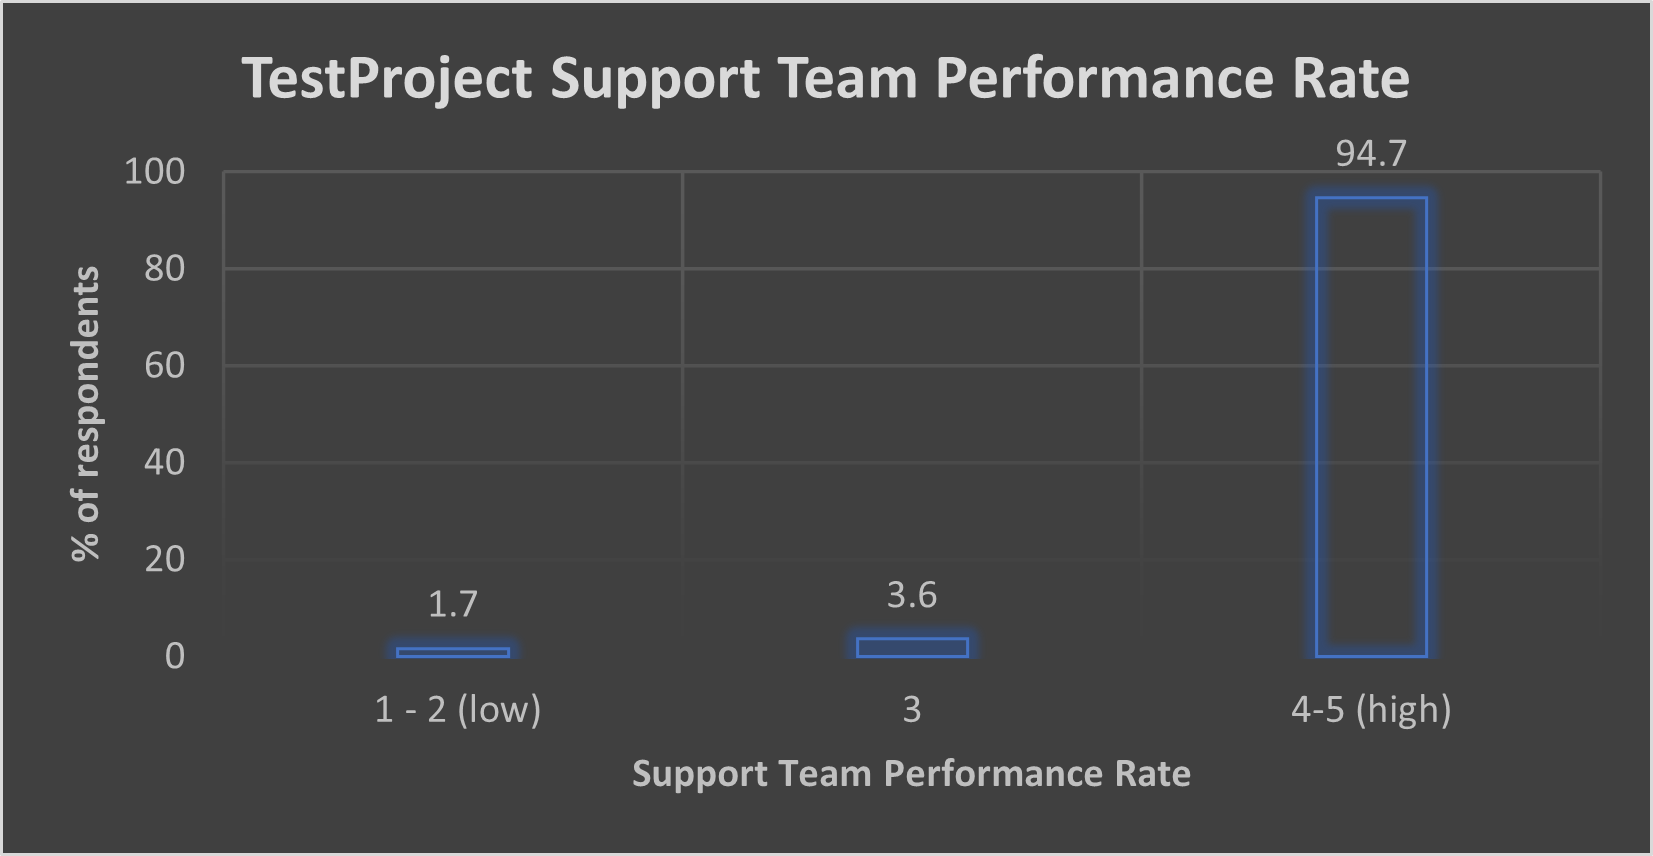 Support Team Performance Rate